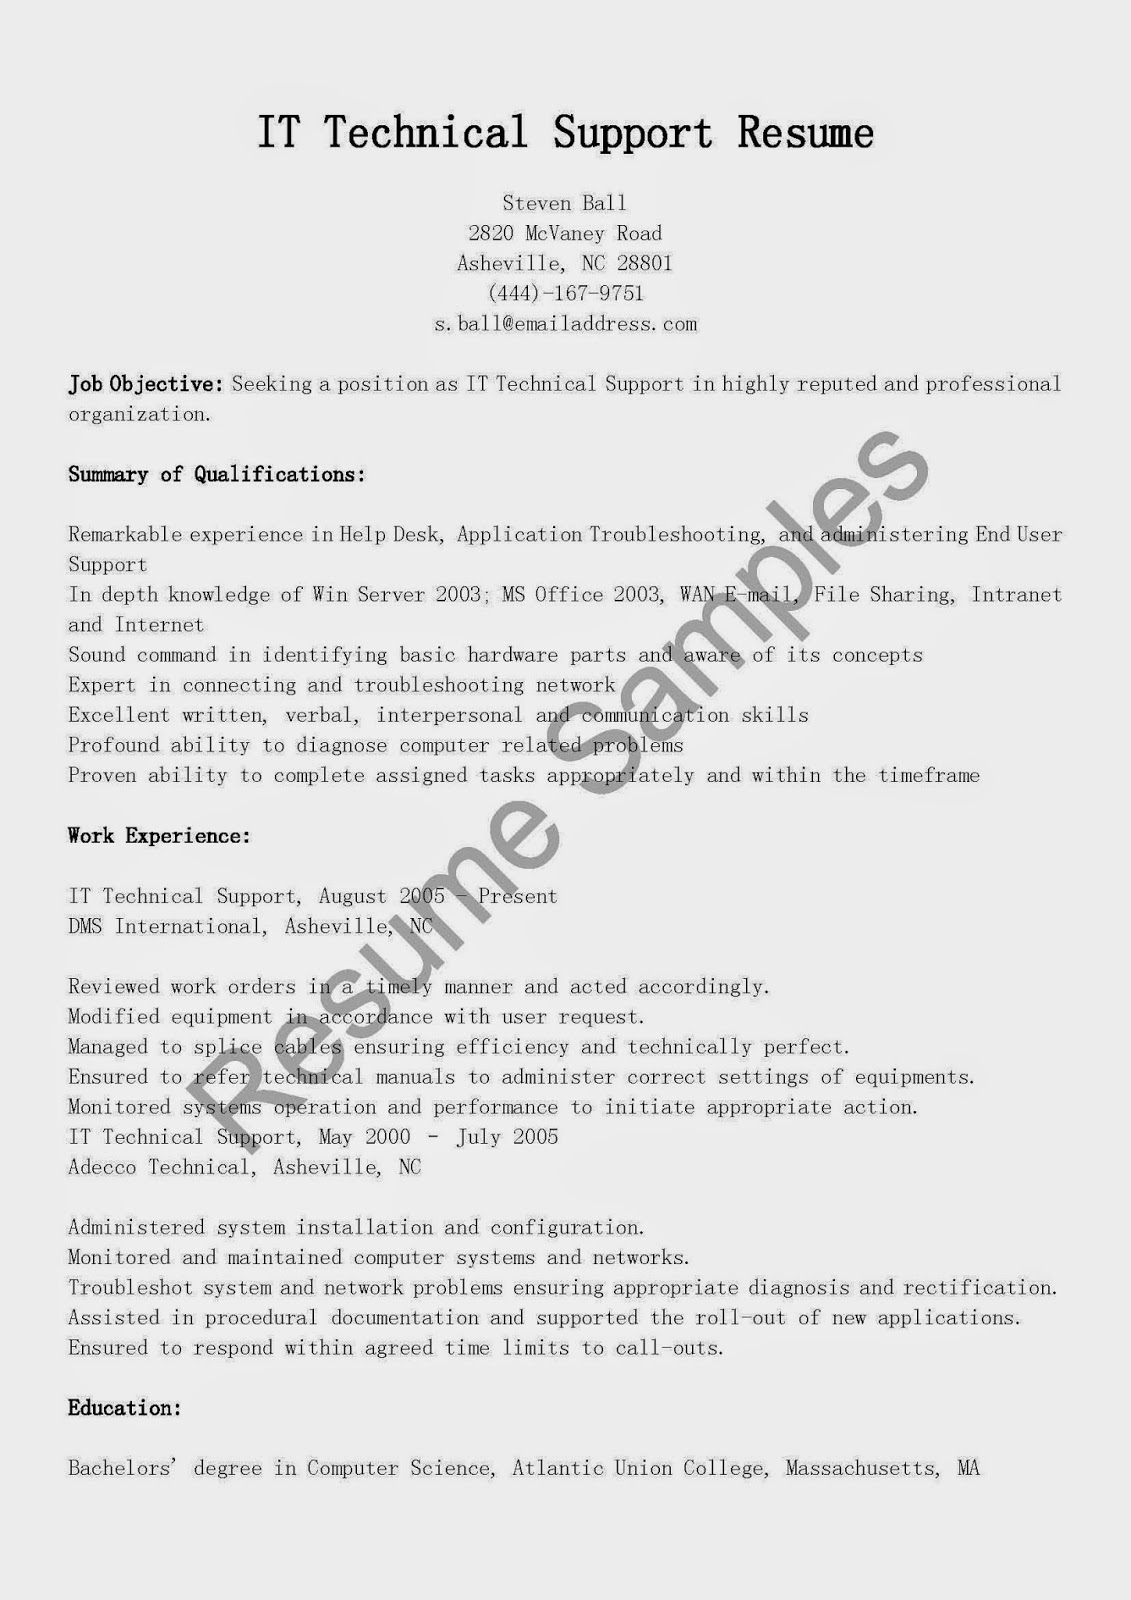 Senior technical support analyst resume